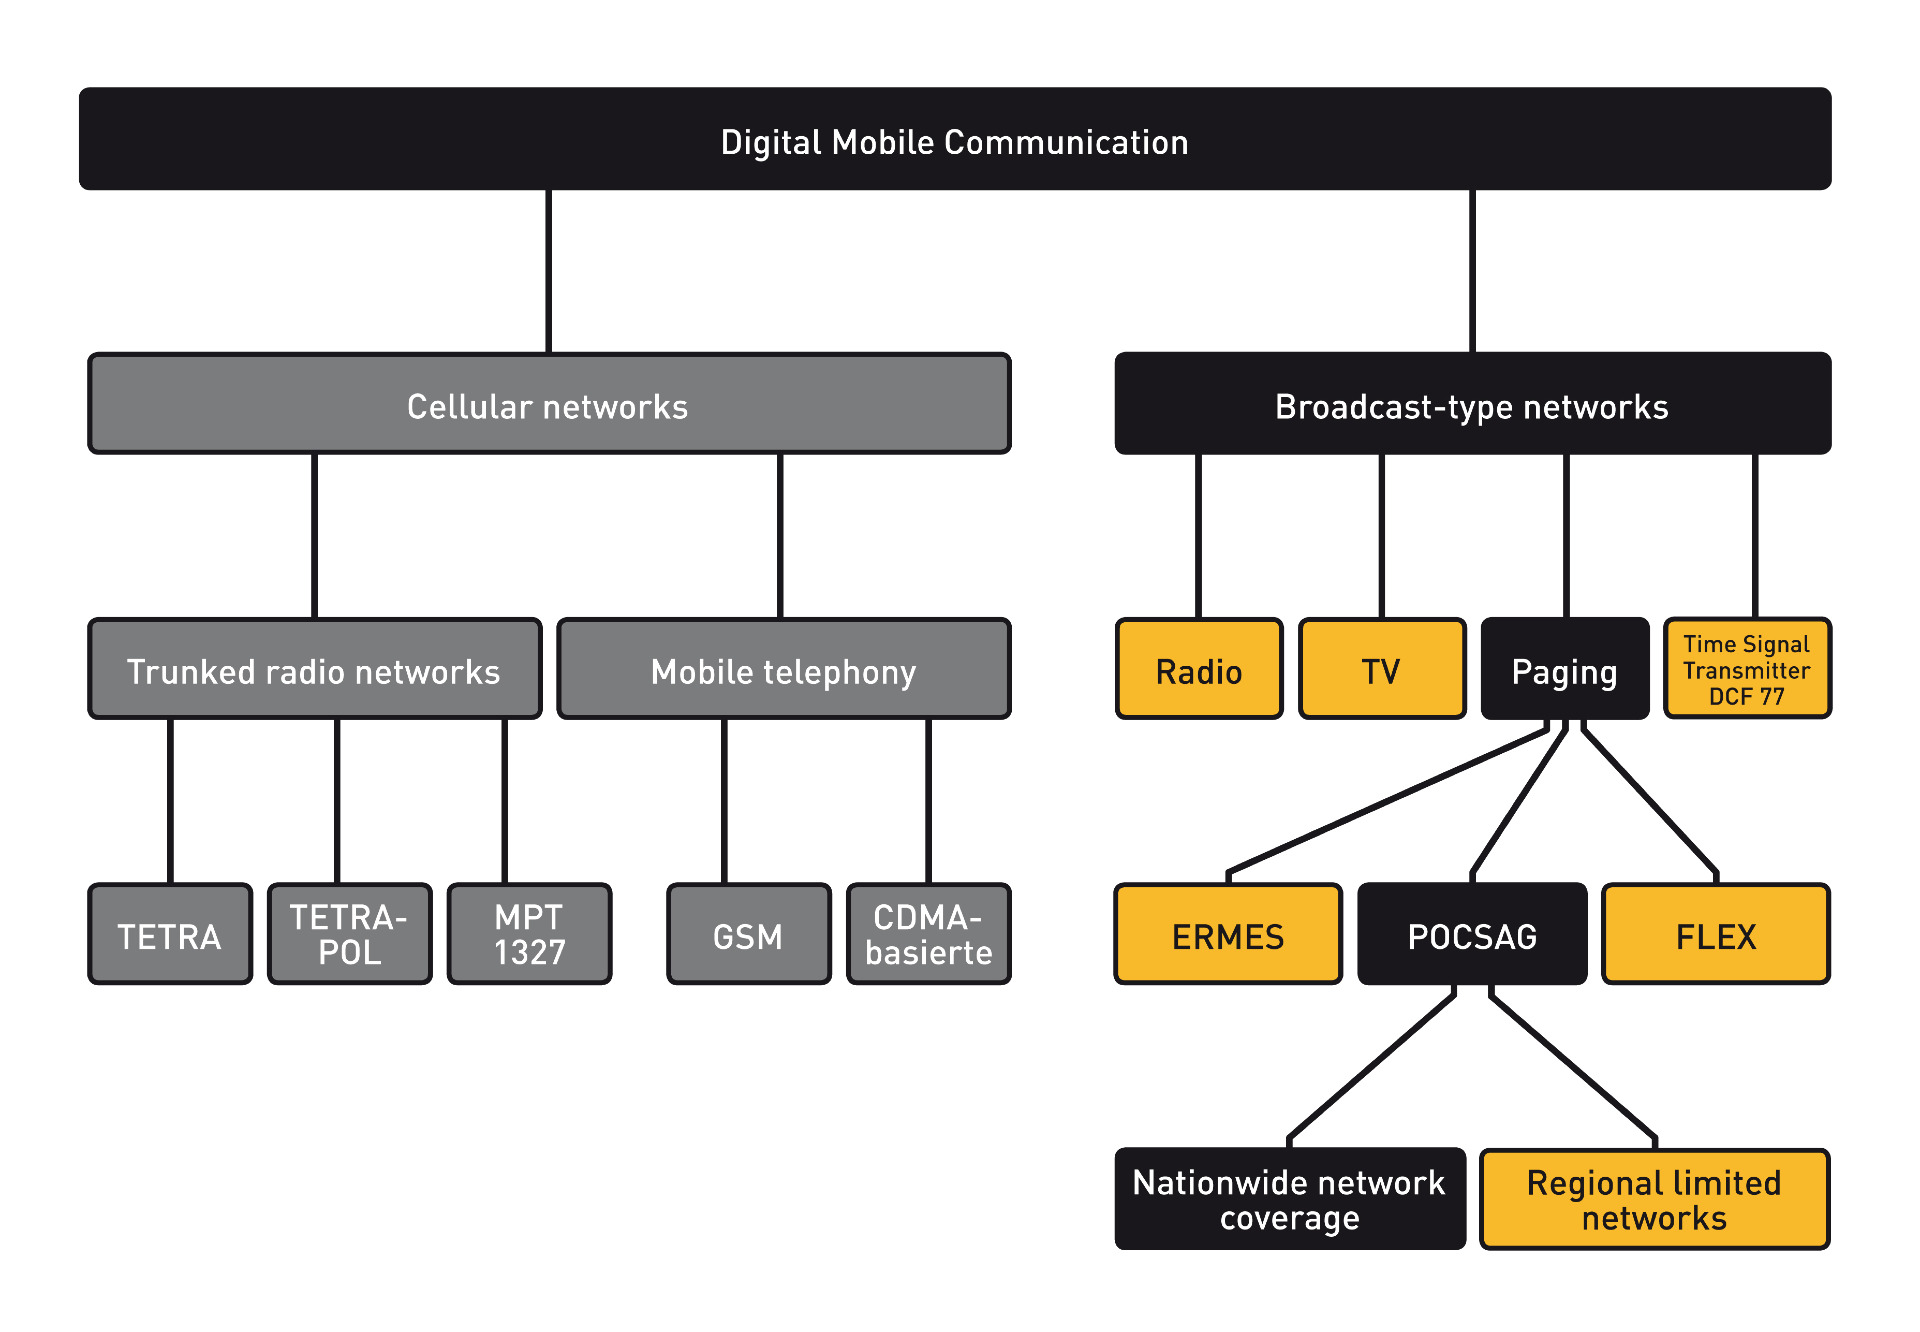 digital mobile communication technologies compared